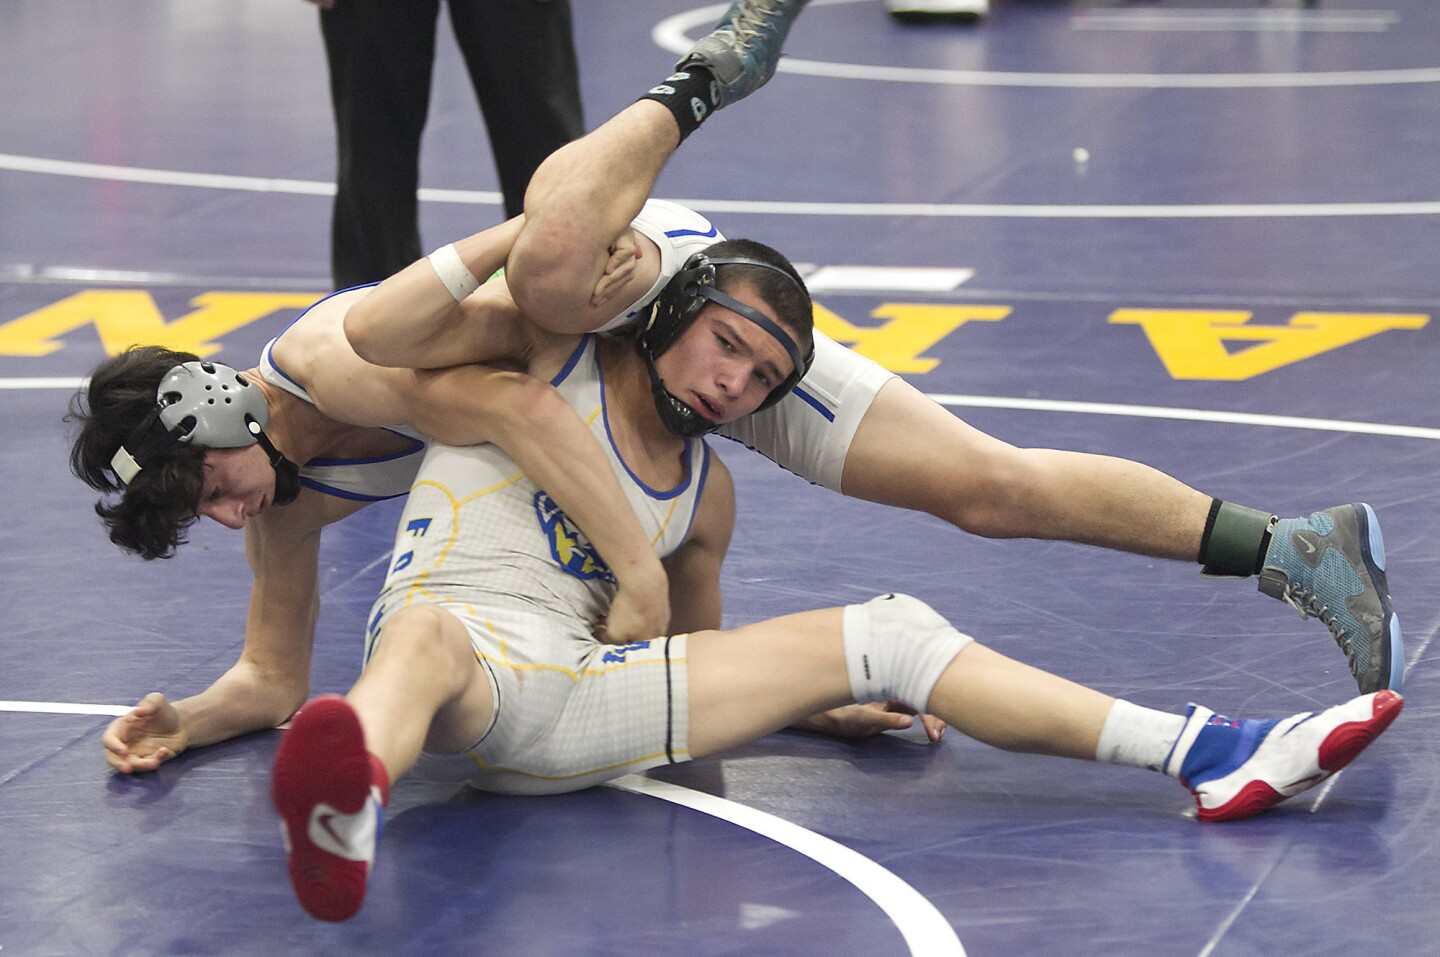 Fountain Valley's Dylan Zotea, makes a move on his opponent in the 126-lb, third place medal match, in the Five Counties Invitational wrestling tournament at Fountain Valley High on Saturday.